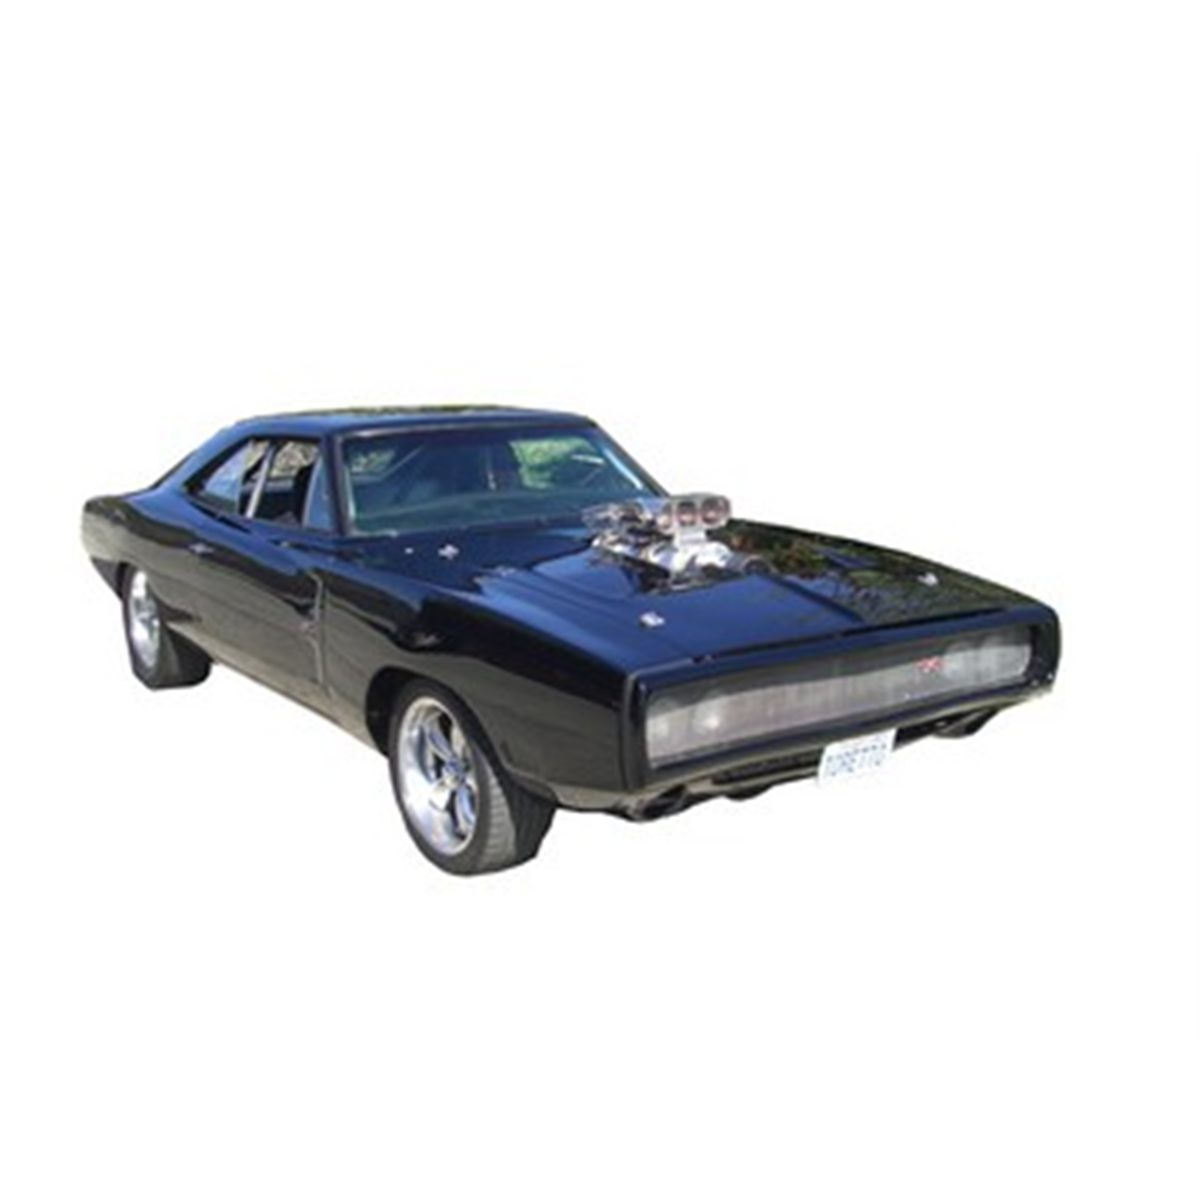 Vin Diesel's 1969 Dodge Charger From Fast And Furious 4